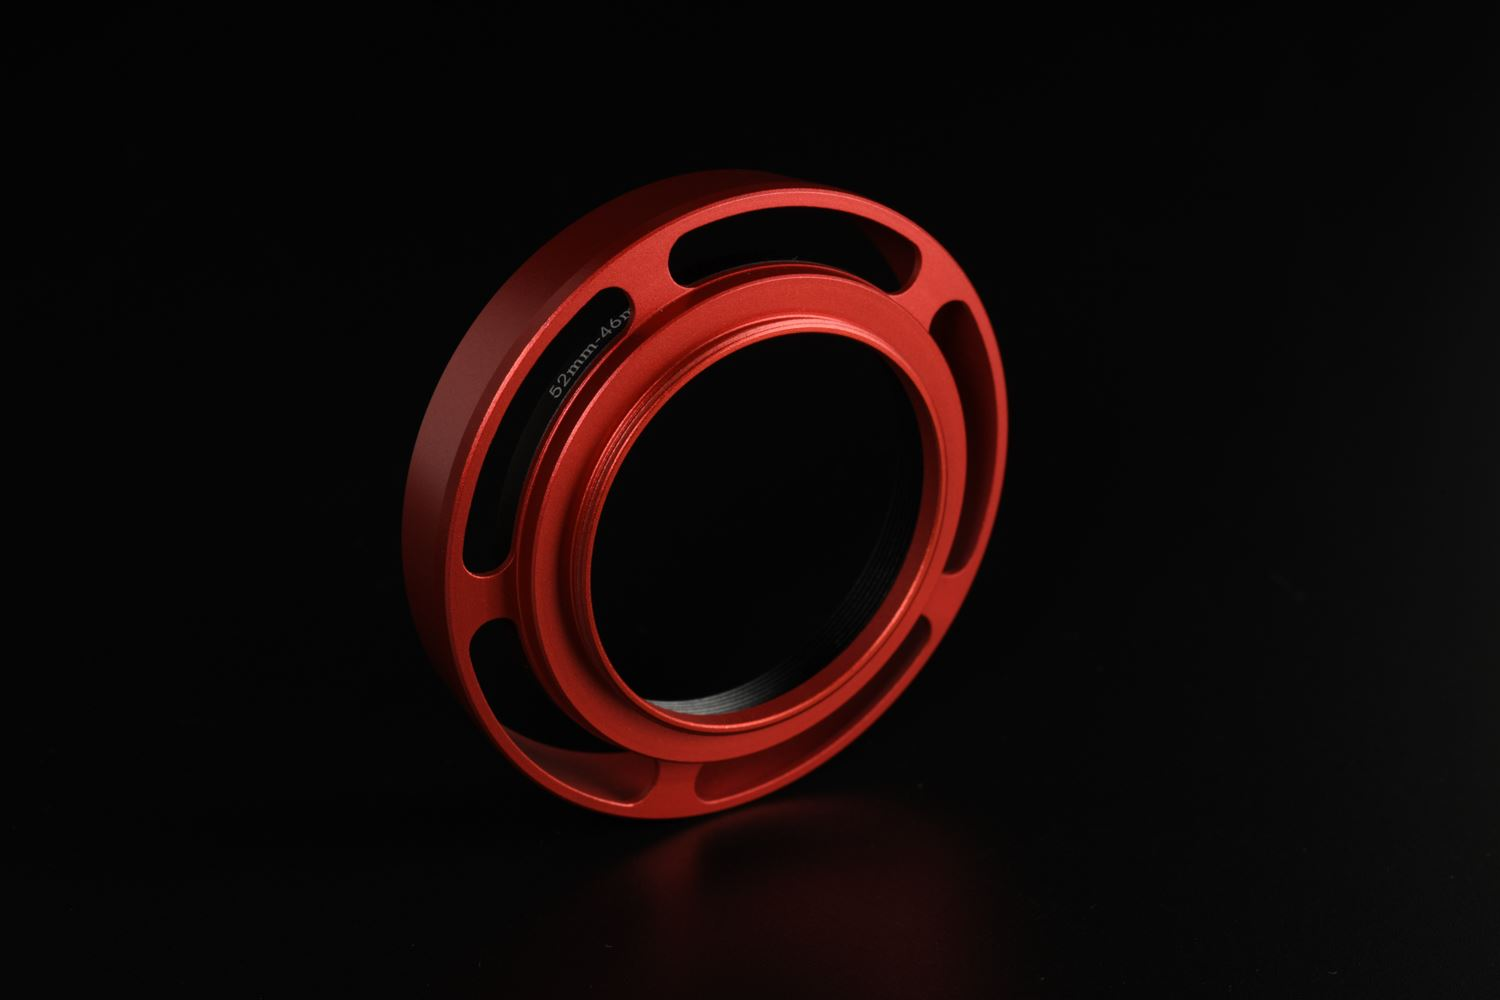 Picture of Red Ventilated Lens Hood made for Leica E46 lenses